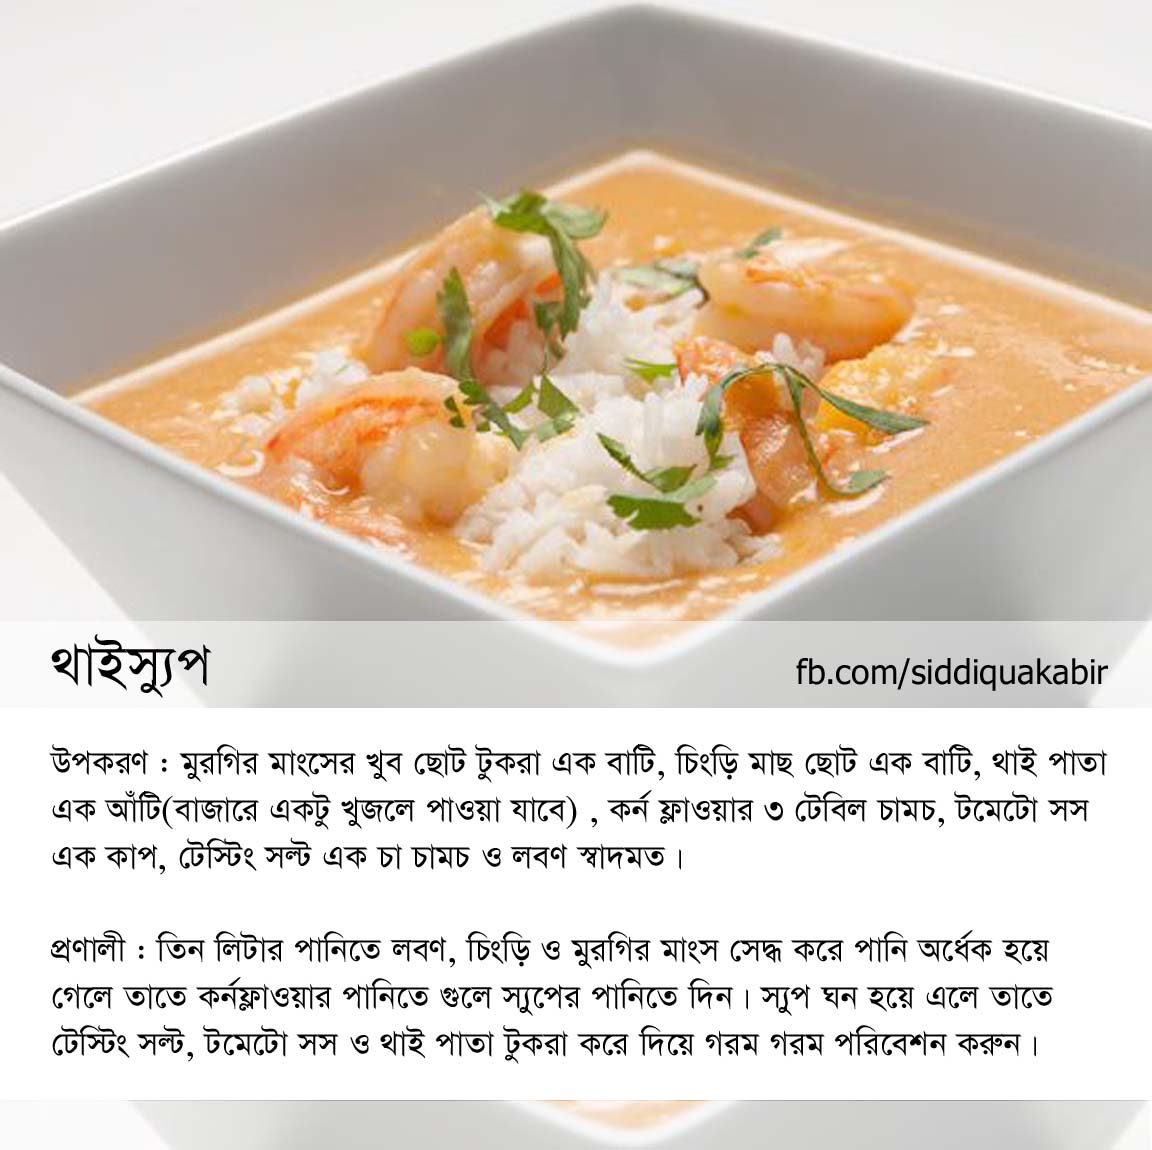 Siddiqua kabir thai soup recipe in begali language thai soup recipe in begali language forumfinder Choice Image